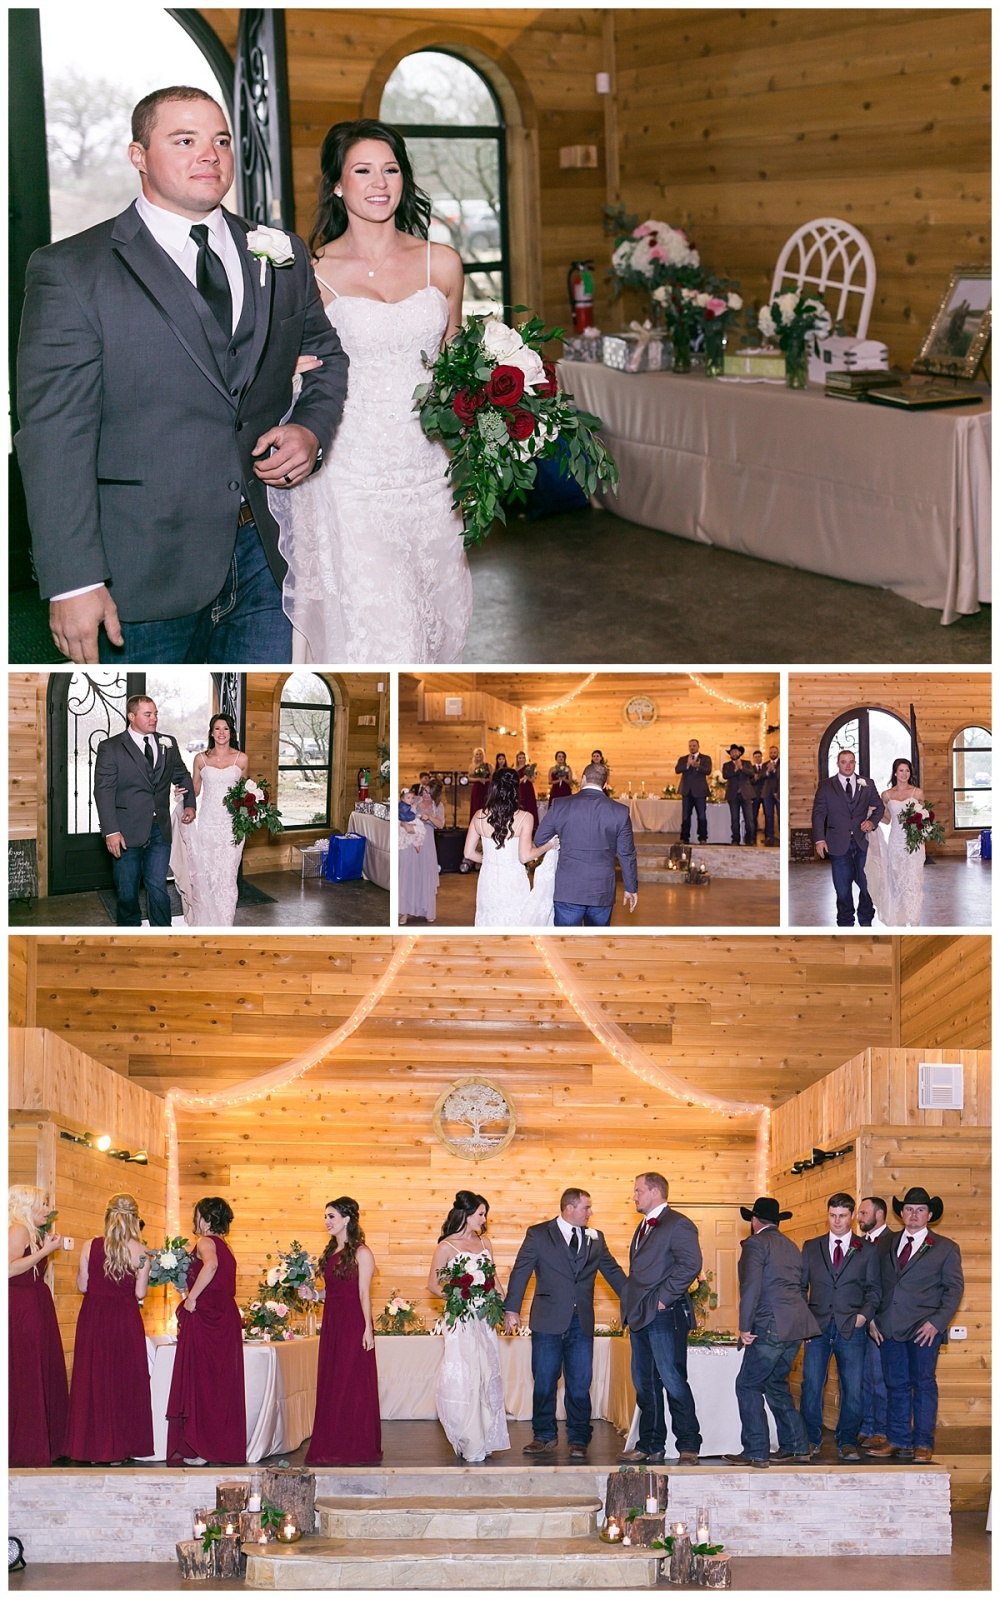 Carly-Barton-Photography-Geronimo-Oaks-Wedding-Venue-Texas-Hill-Country-Ronnie-Sarah_0112.jpg